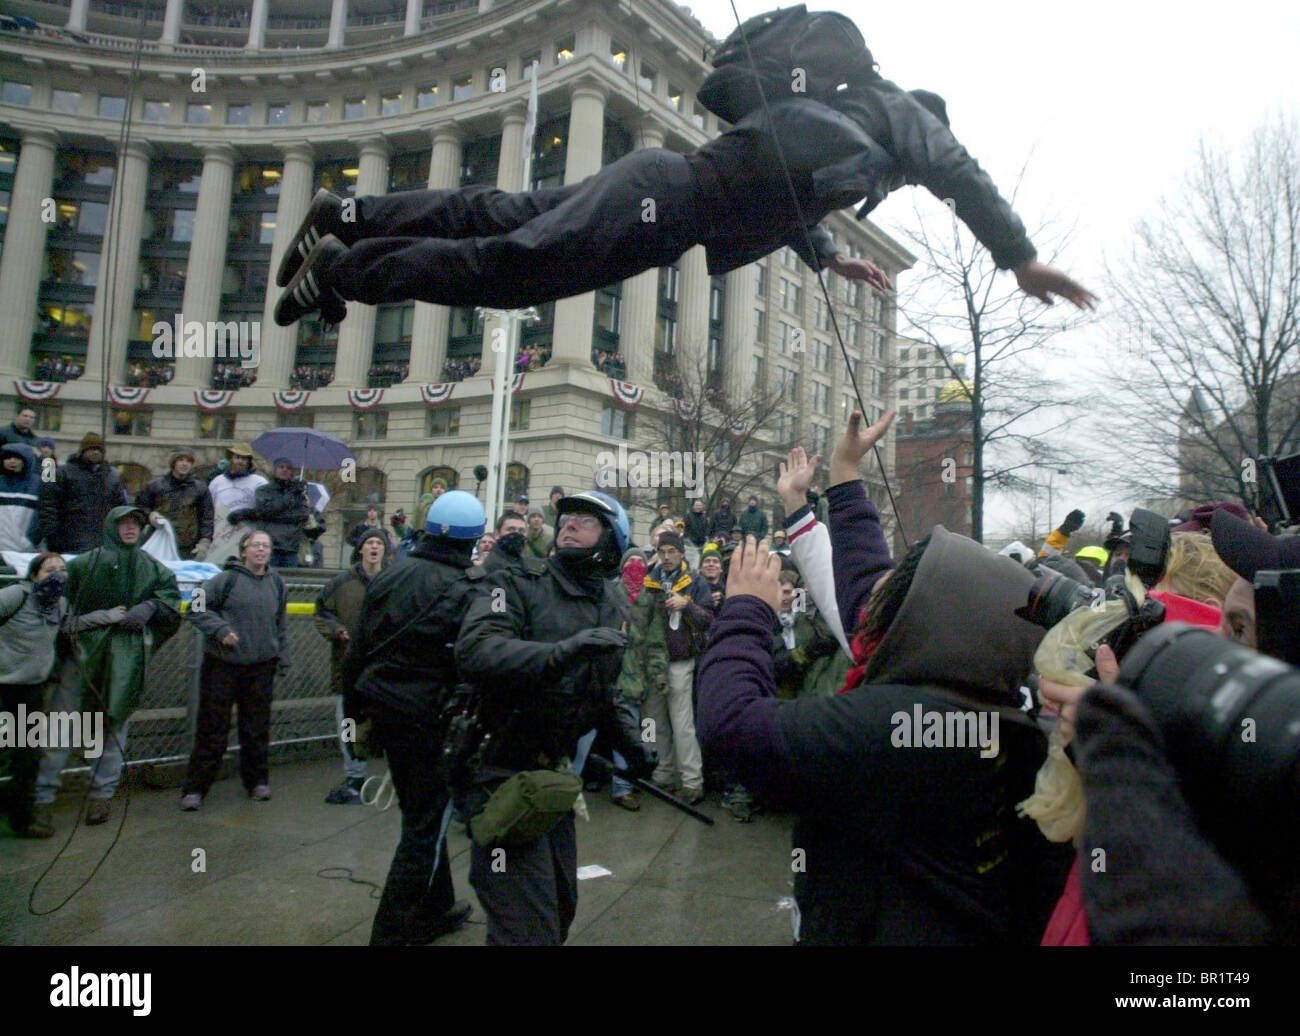 A protester jumps from the navy Memorial over the head of a policeman at president George W. Bush's inauguration - Stock Image